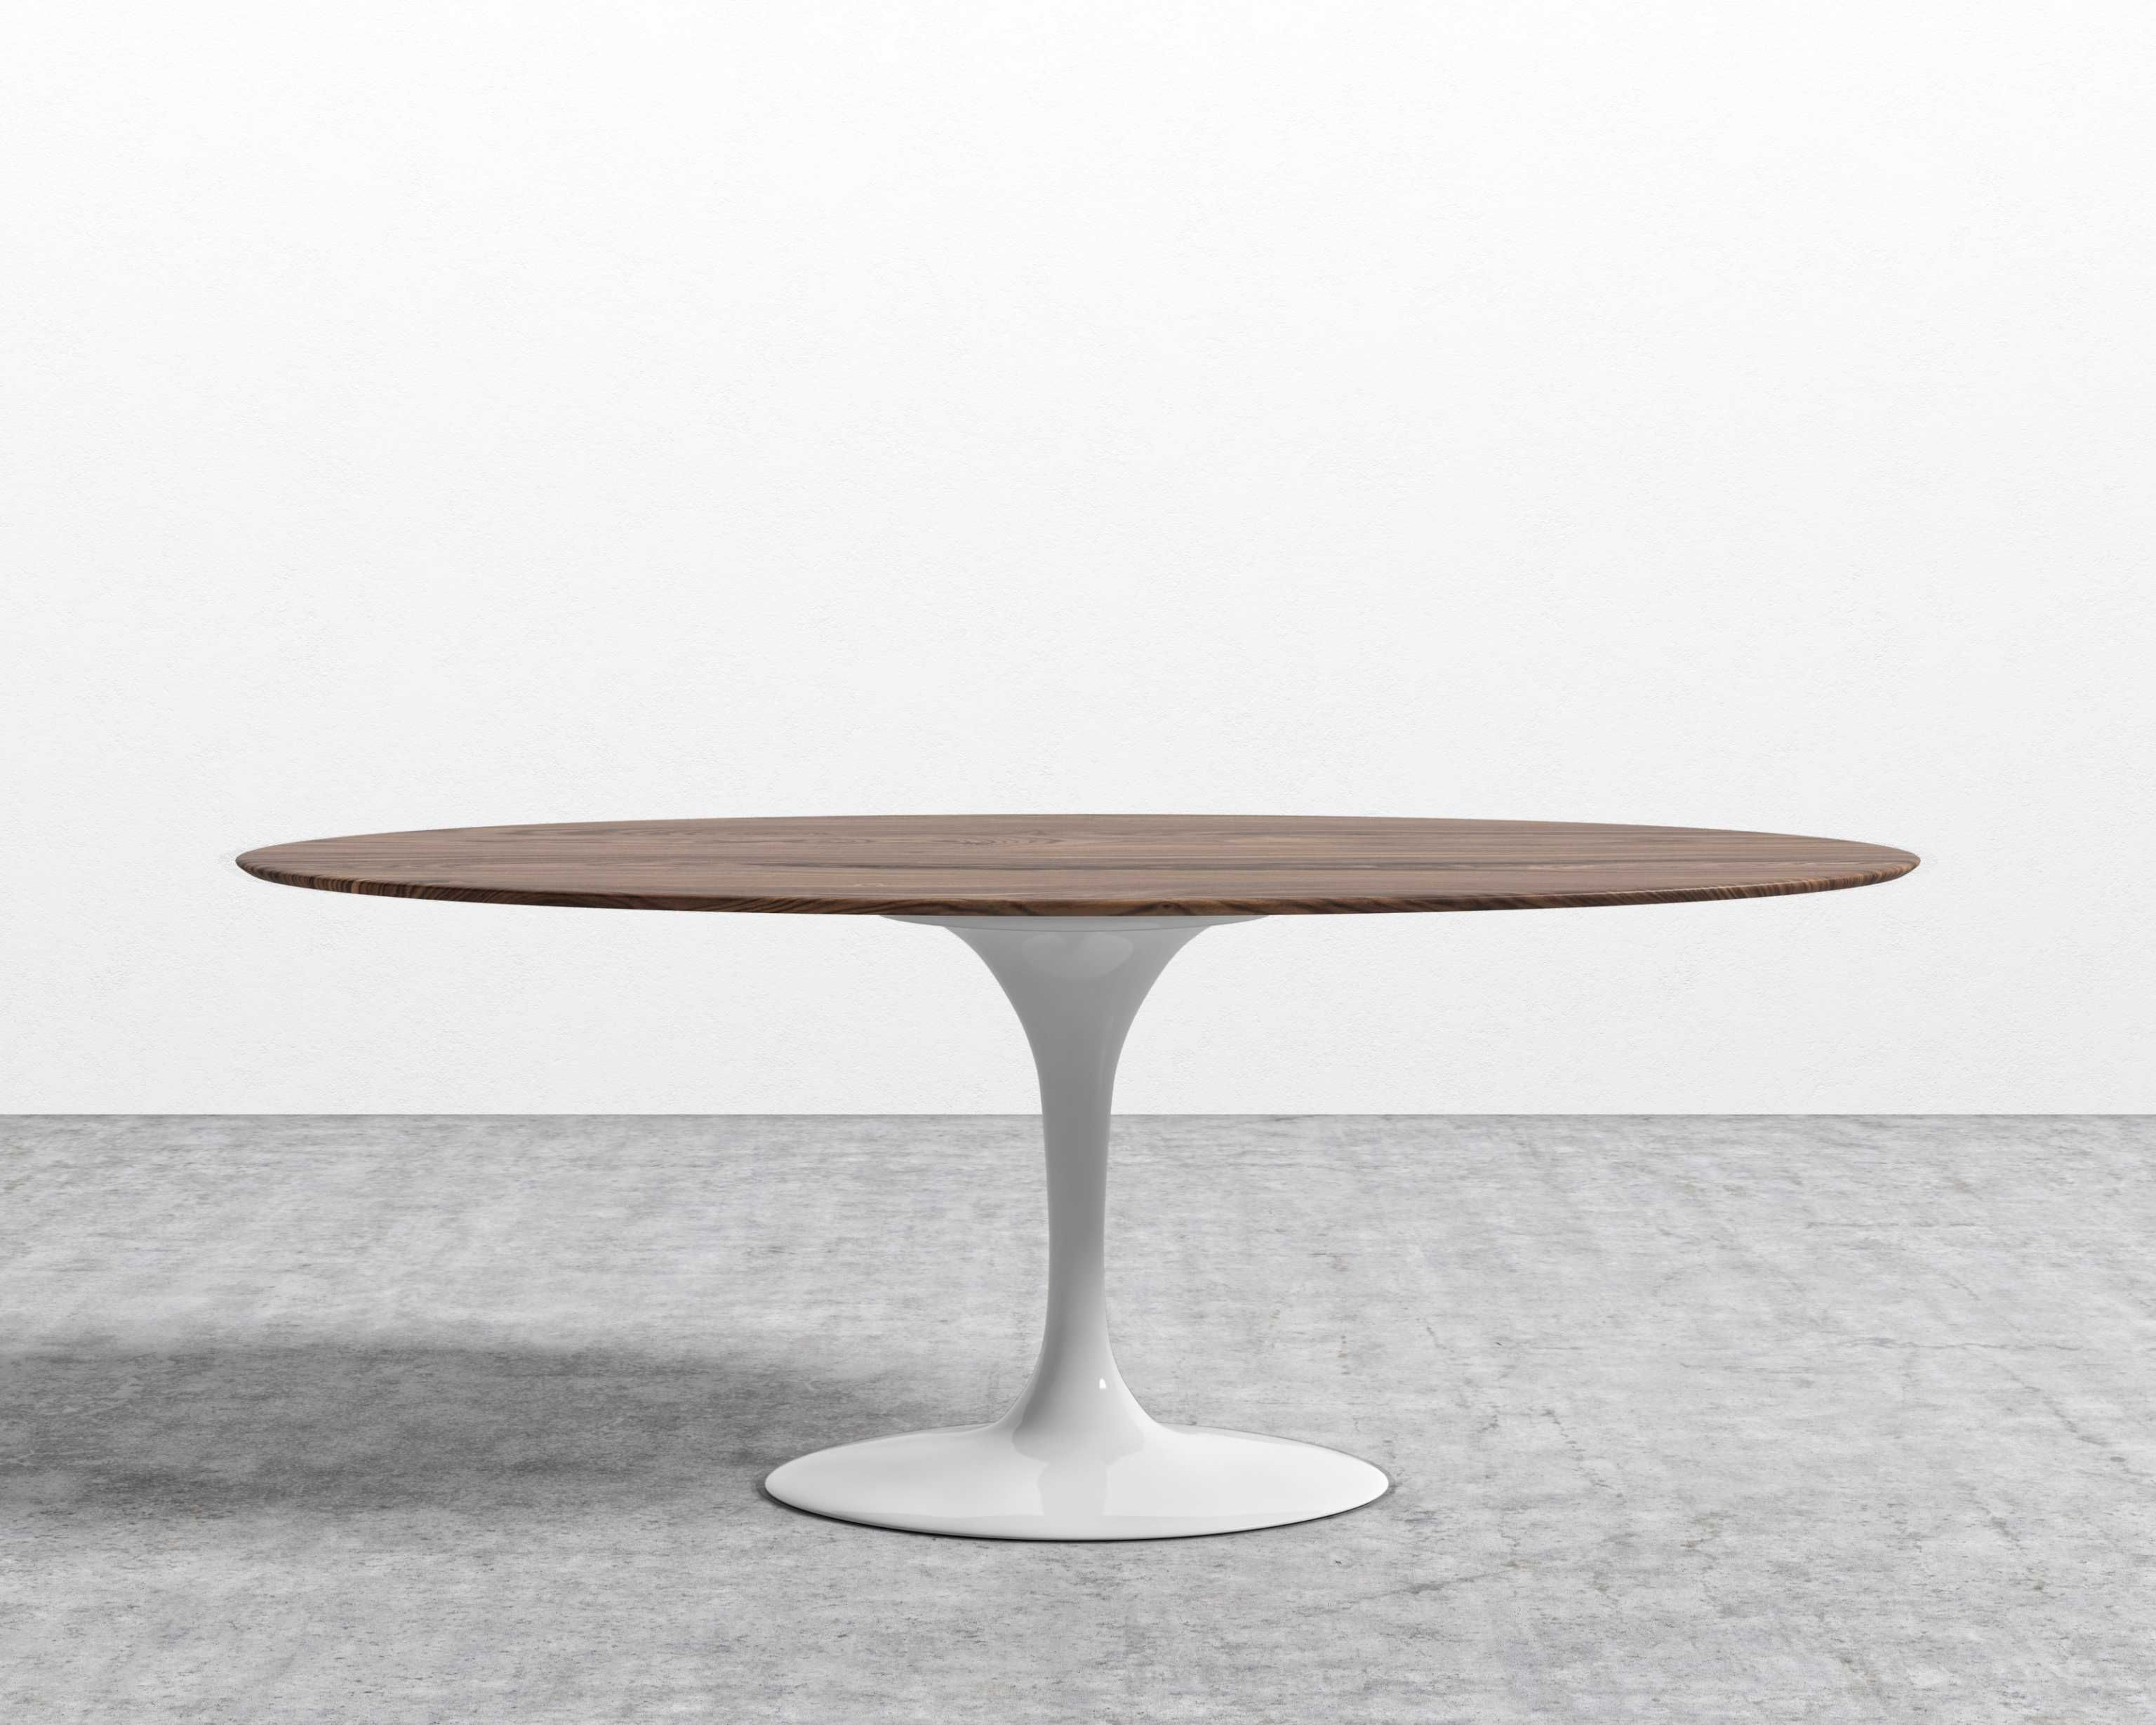 Tulip Table Oval Walnut Rove Concepts Rove Classics Mid Century Furniture Tulip Dining Table Tulip Table Oval Table Dining